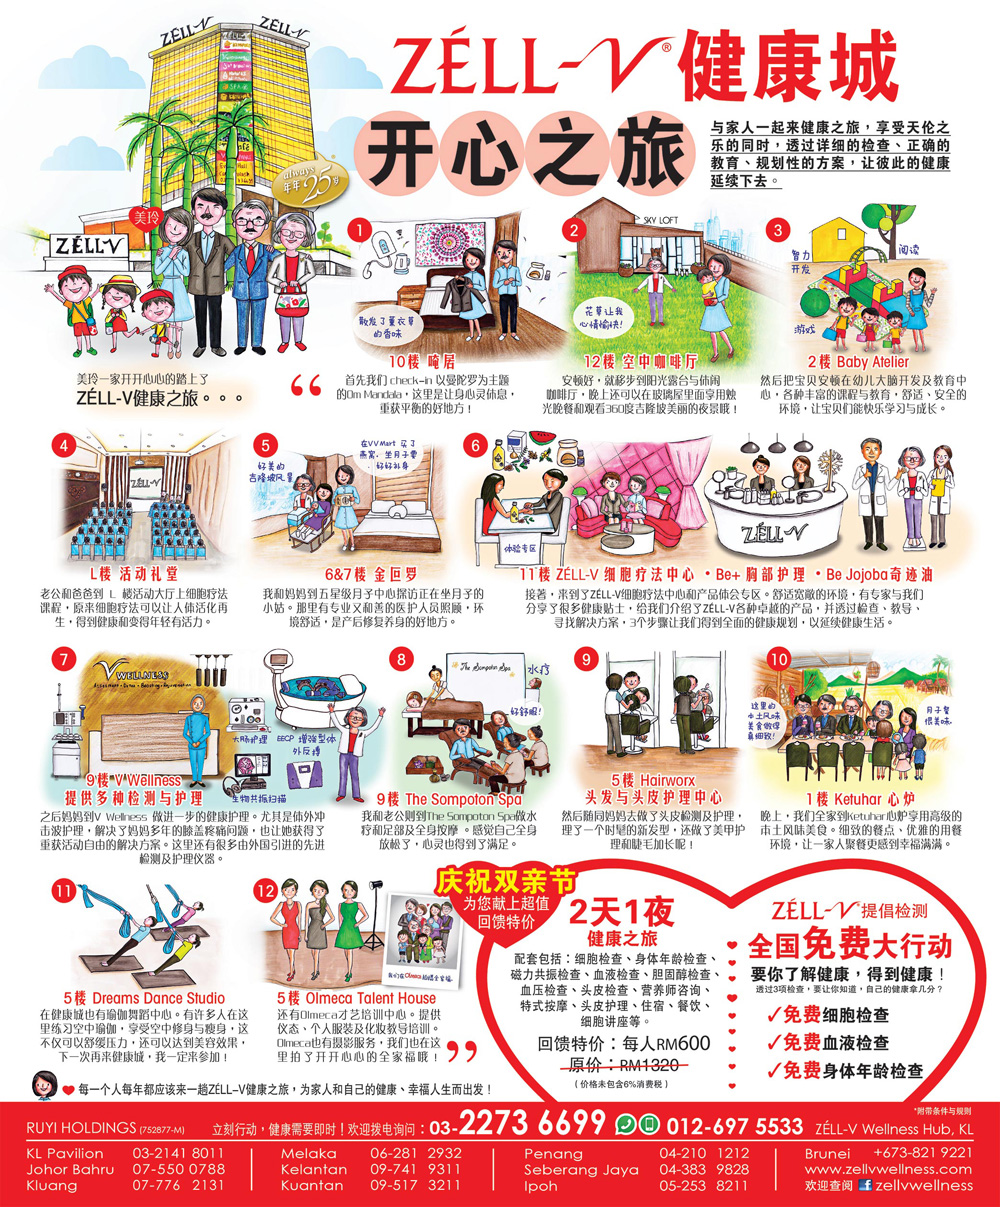 Zell-V @ Sin Chew (May' 17)